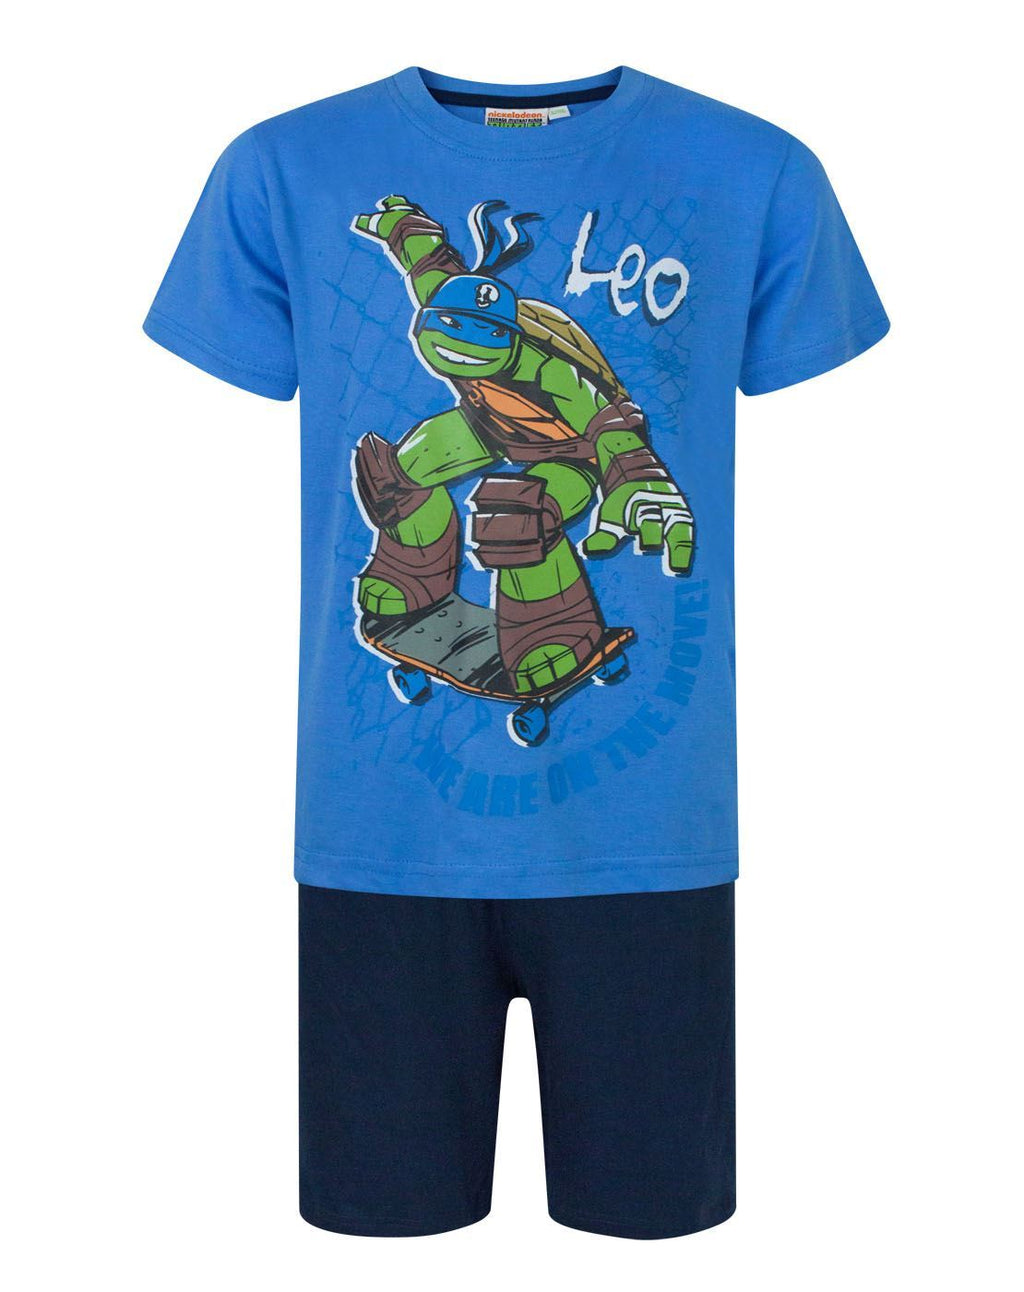 Teenage Mutant Ninja Turtles Leonardo Boy's Pyjamas